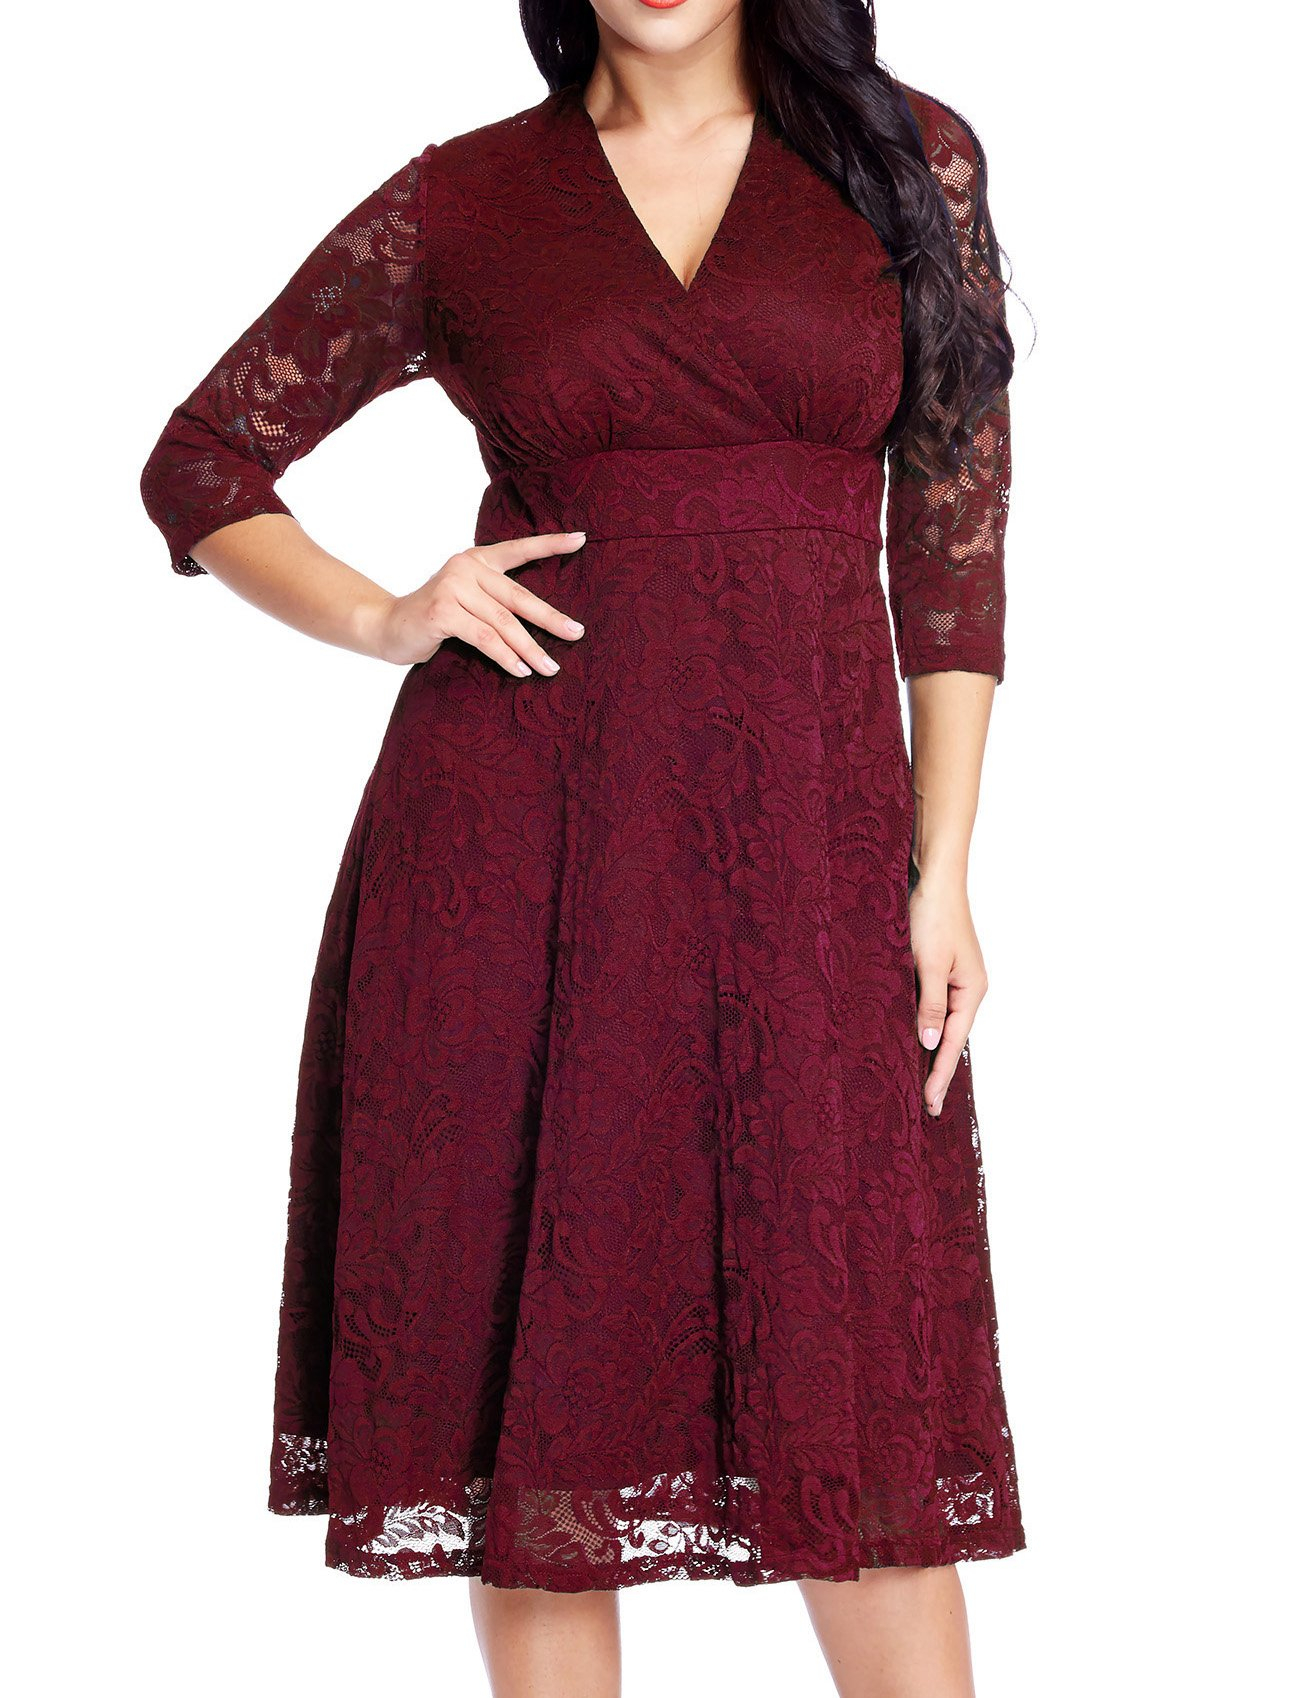 GRAPENT Women's Lace Plus Size Mother Of The Bride Skater Dress Bridal Wedding Party Maroon 16W by GRAPENT (Image #1)